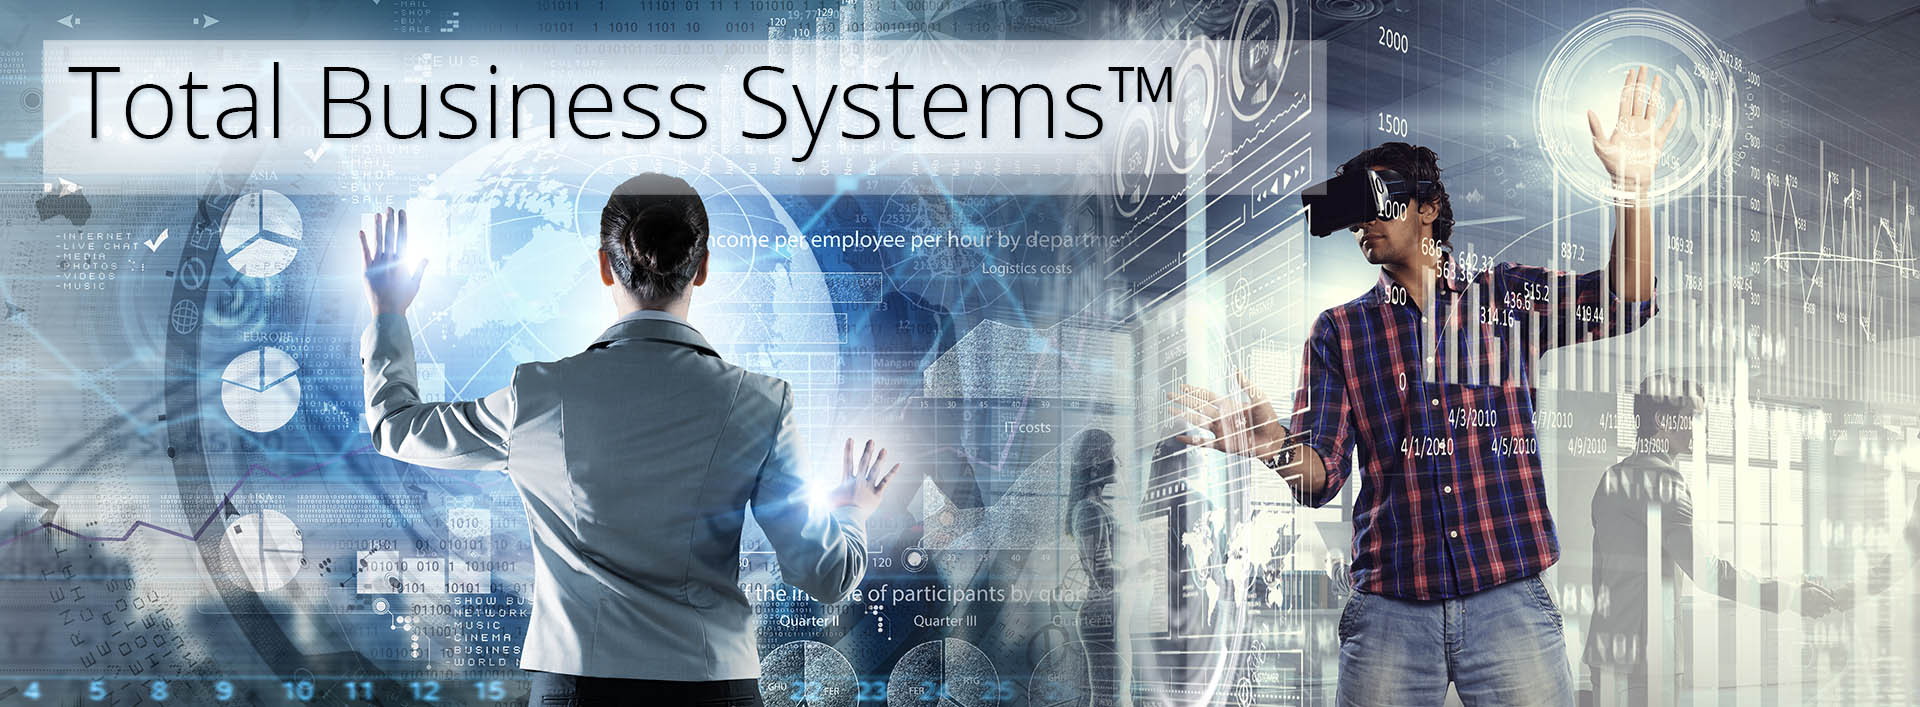 Total Business System tm